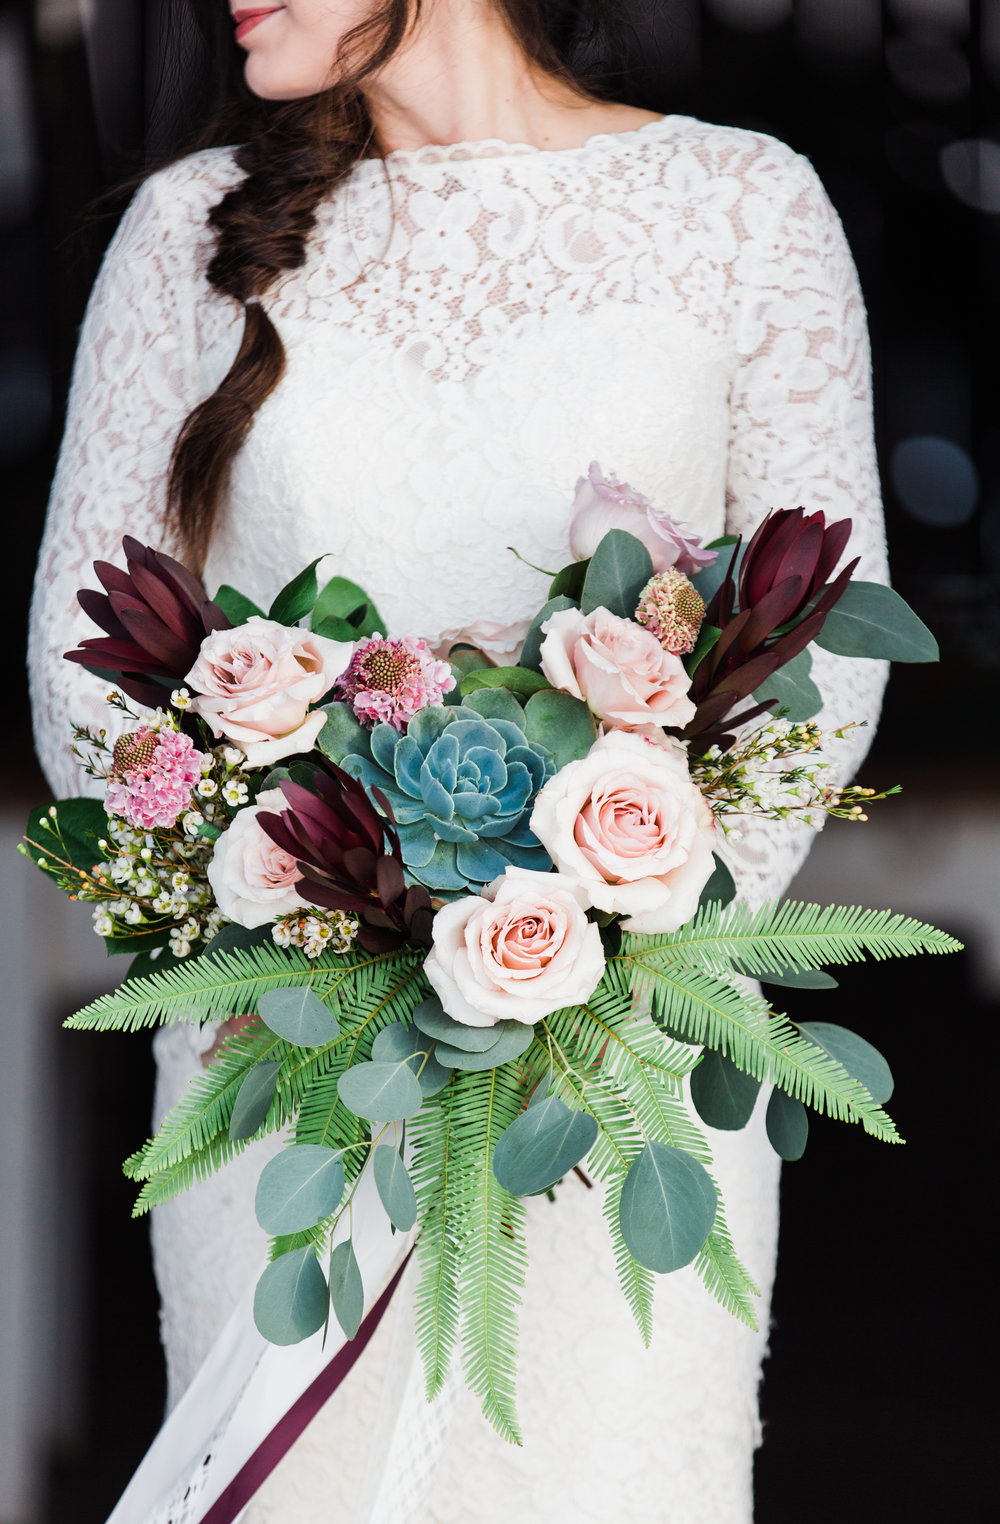 KCMO wedding flowers heart + soul 9